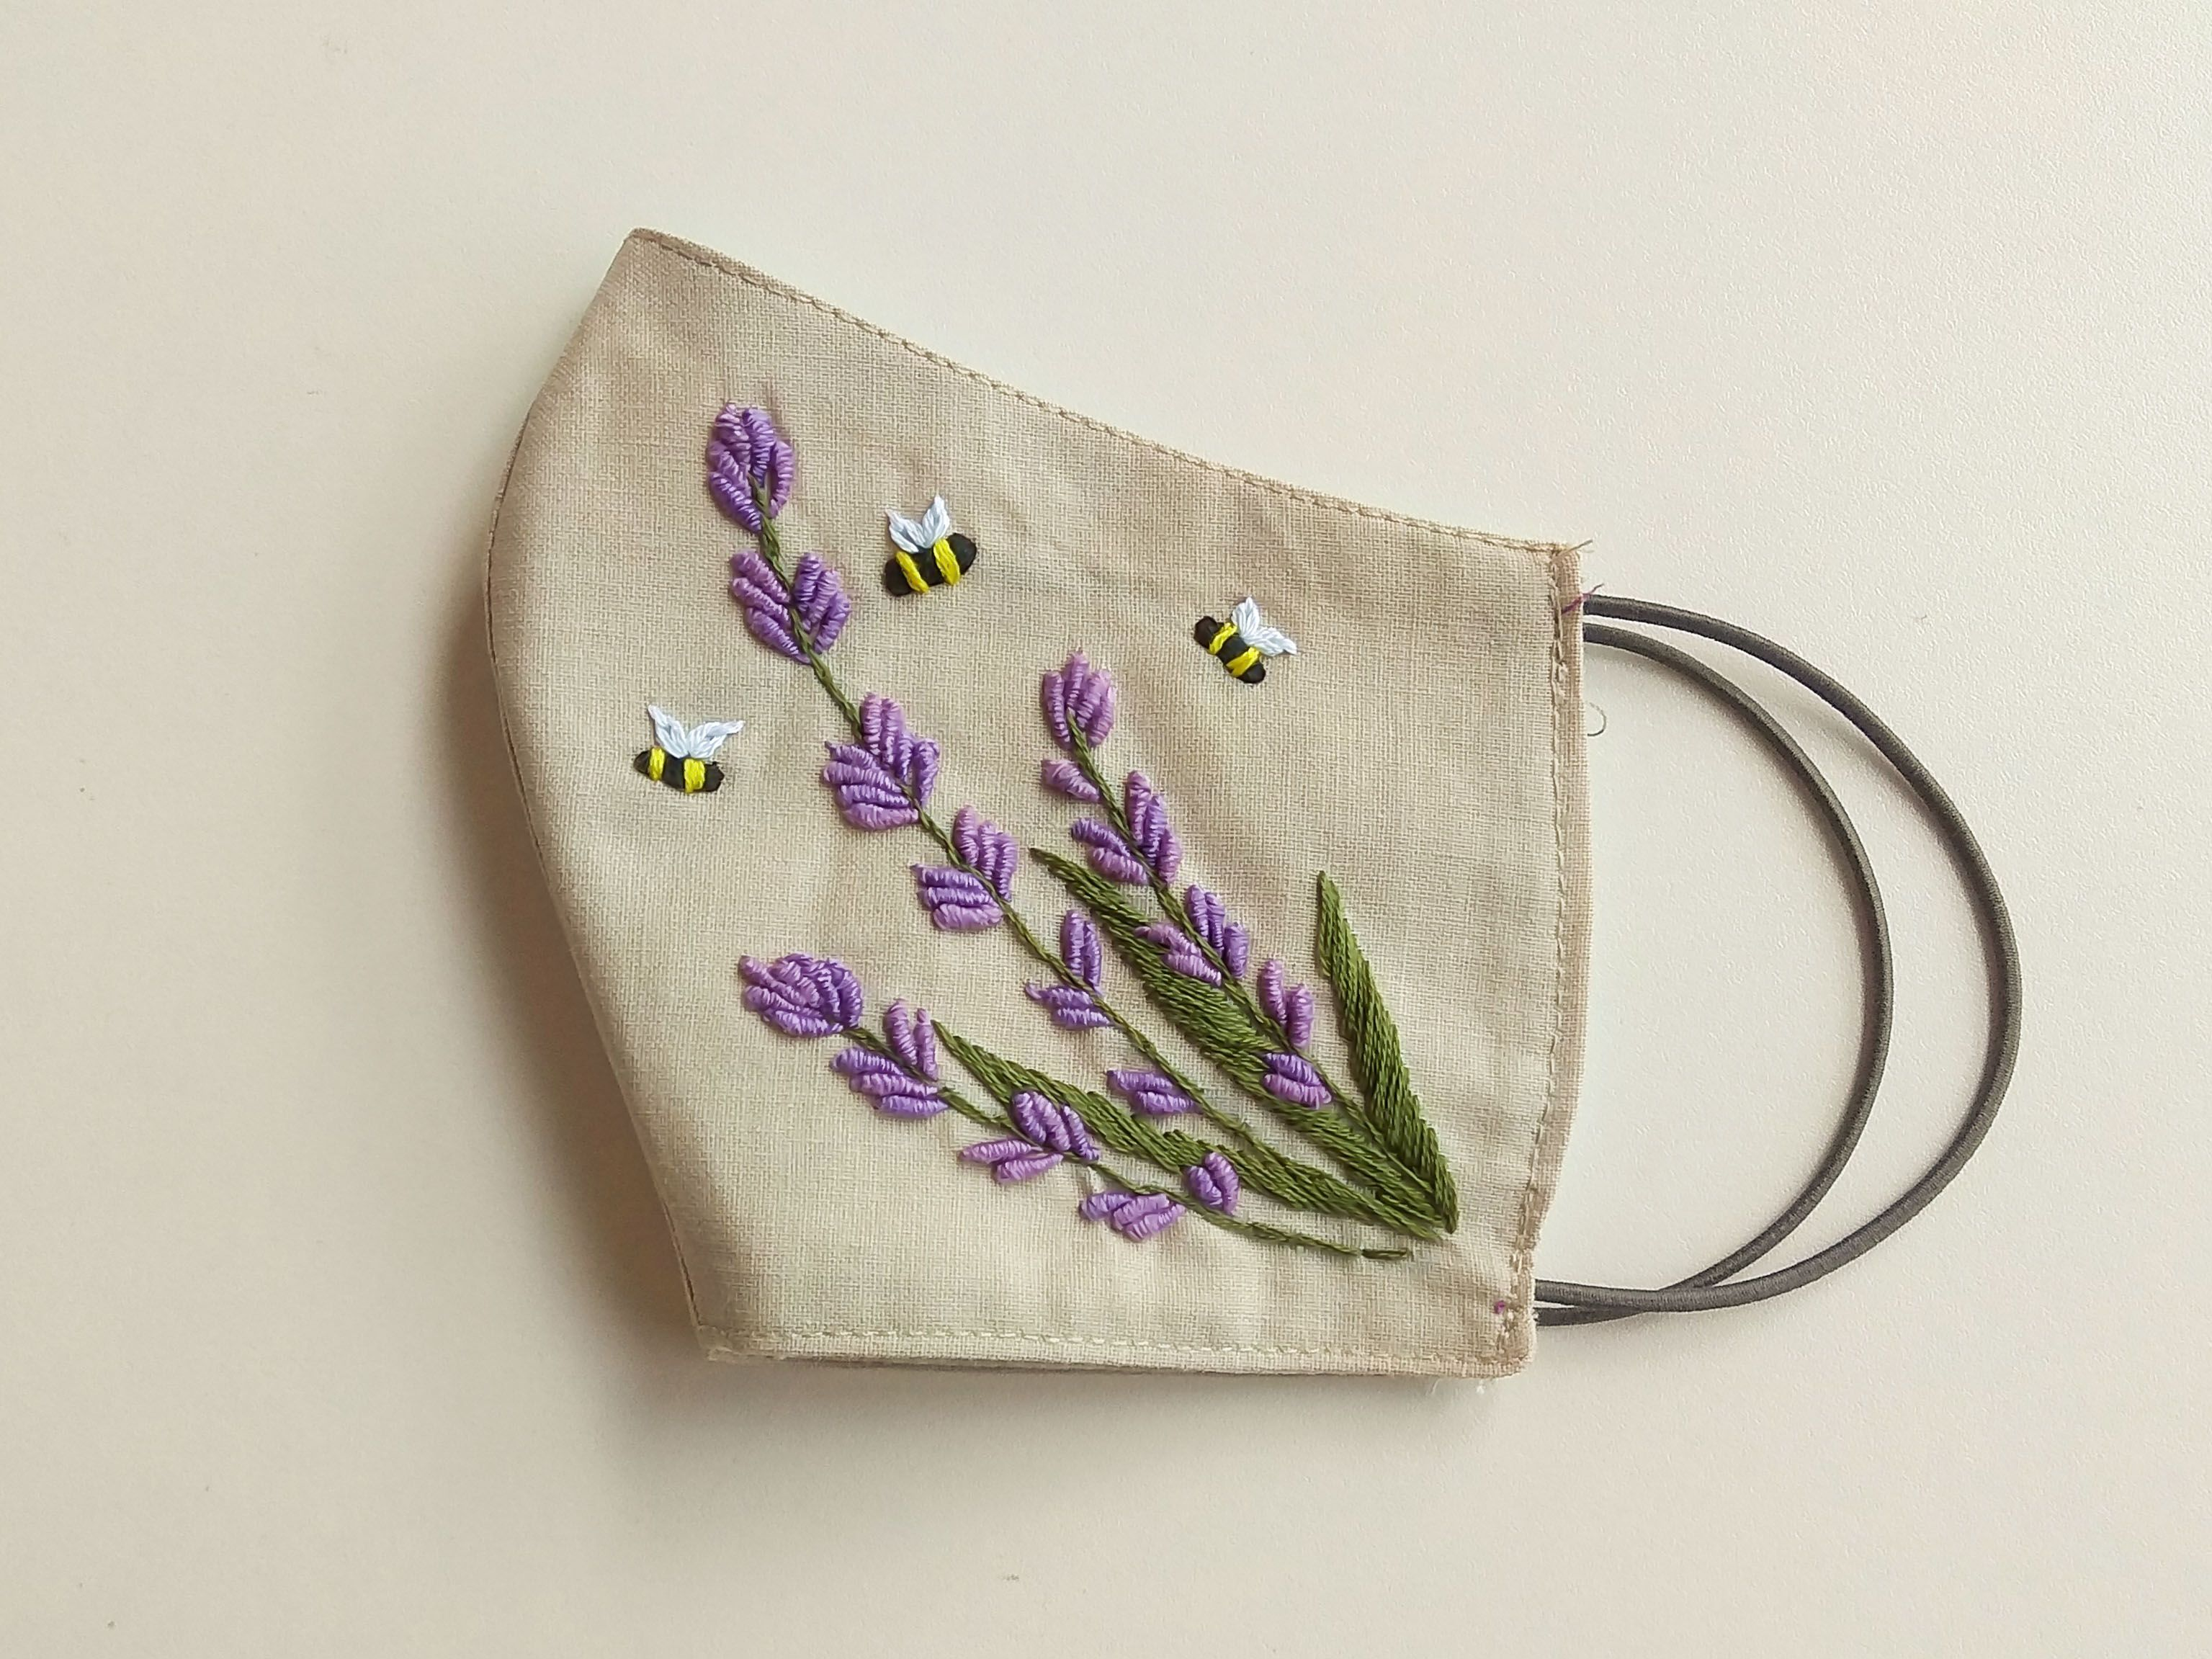 Photo of mouth mask fashion diy, cotton face mask fashion style, face mask design, embroidered lavender, bees